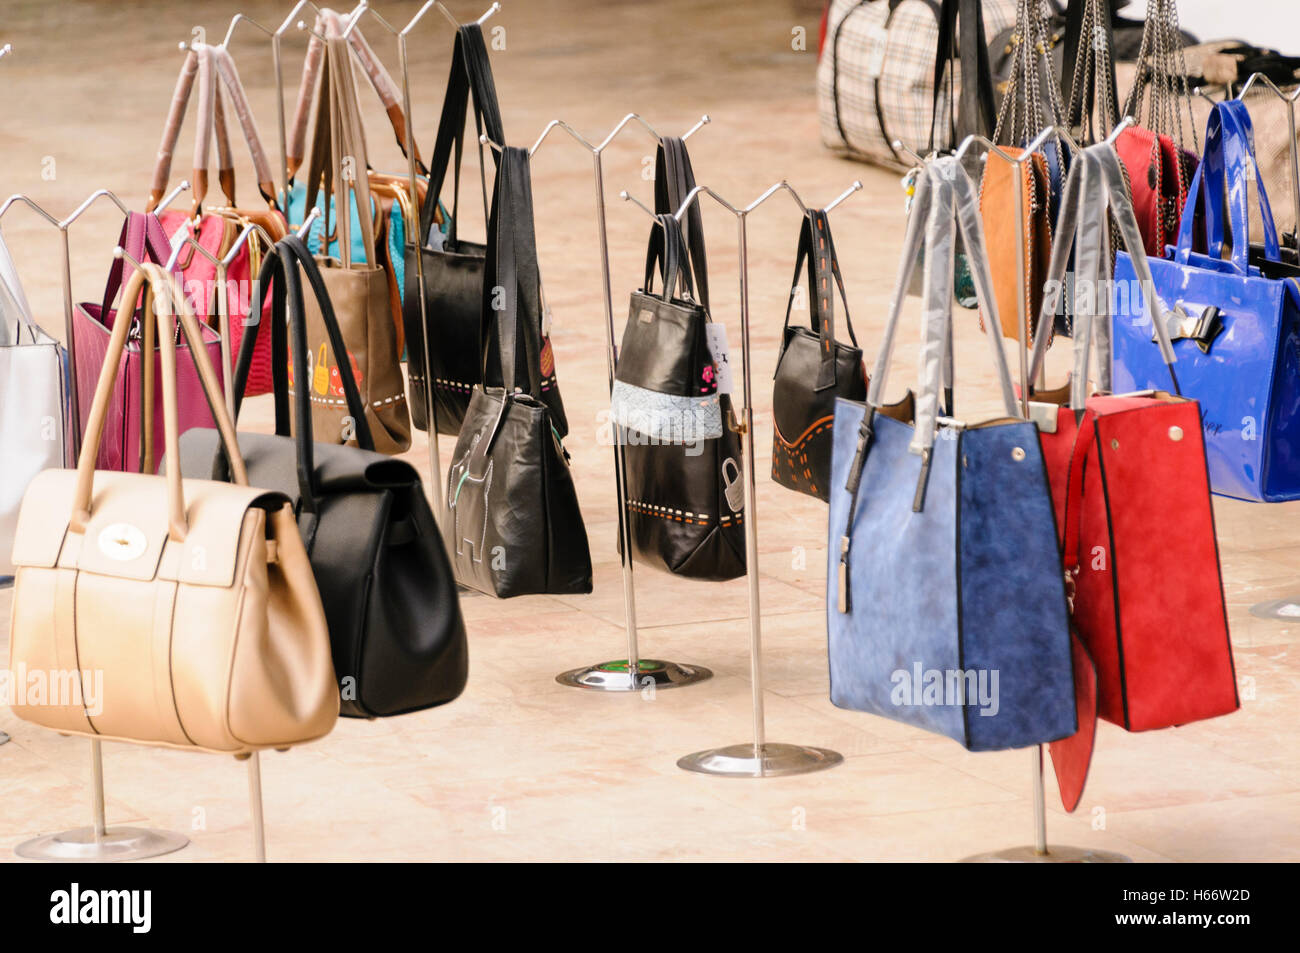 ce1a5f5bdd Shop in Turkey selling counterfeit designer handbags including Radley,  Michael Corrs, Mulberry, Prada etc.